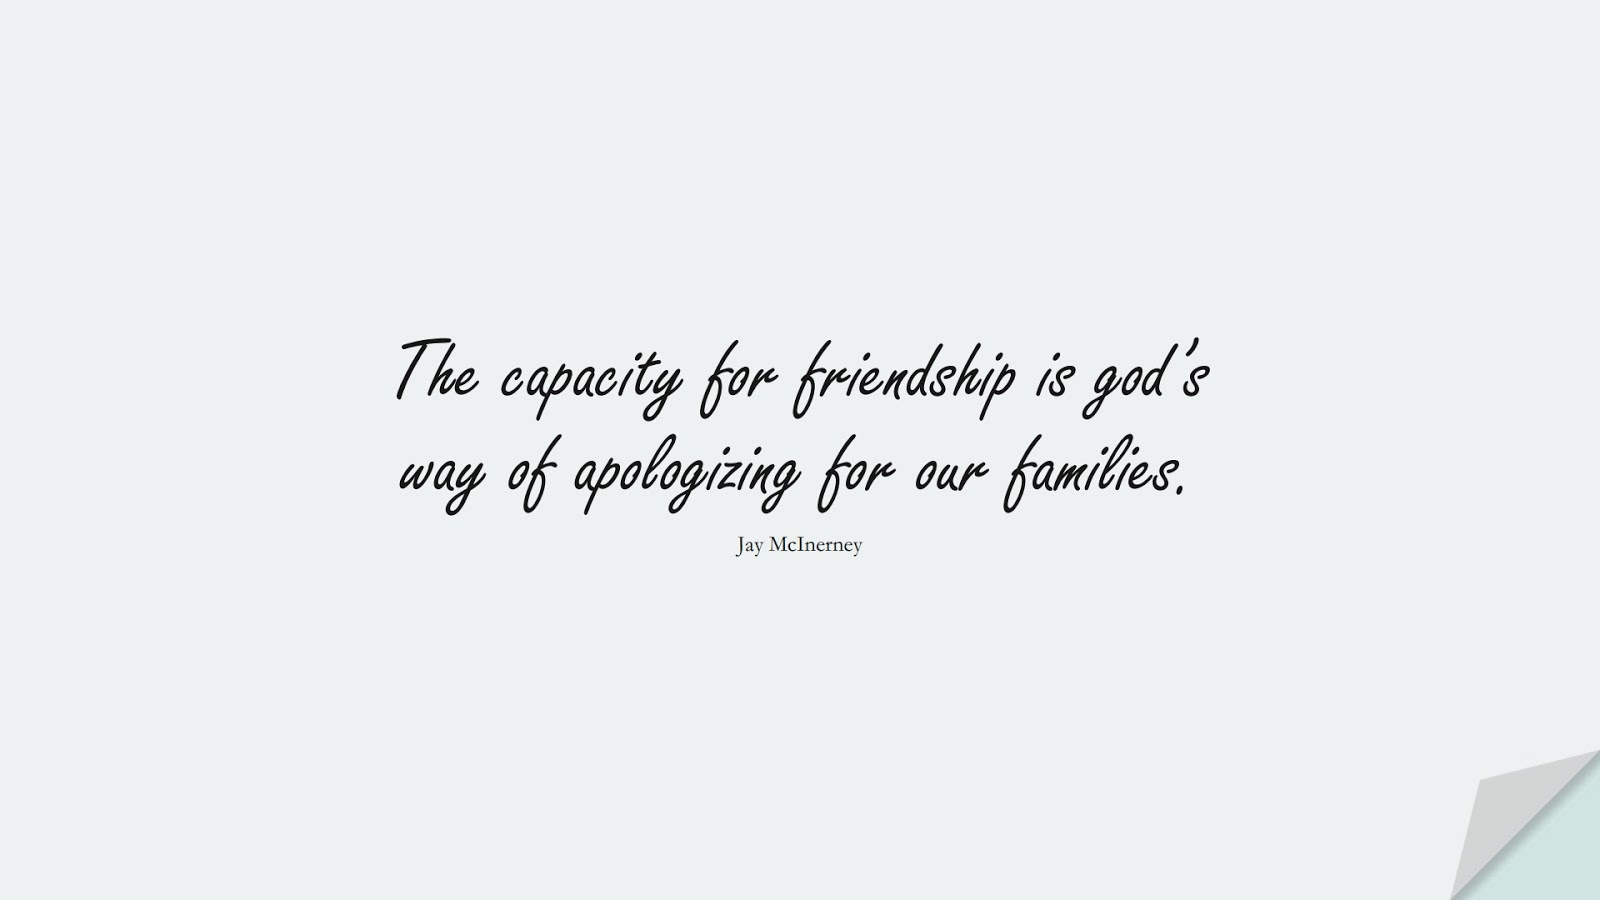 The capacity for friendship is god's way of apologizing for our families. (Jay McInerney);  #FamilyQuotes